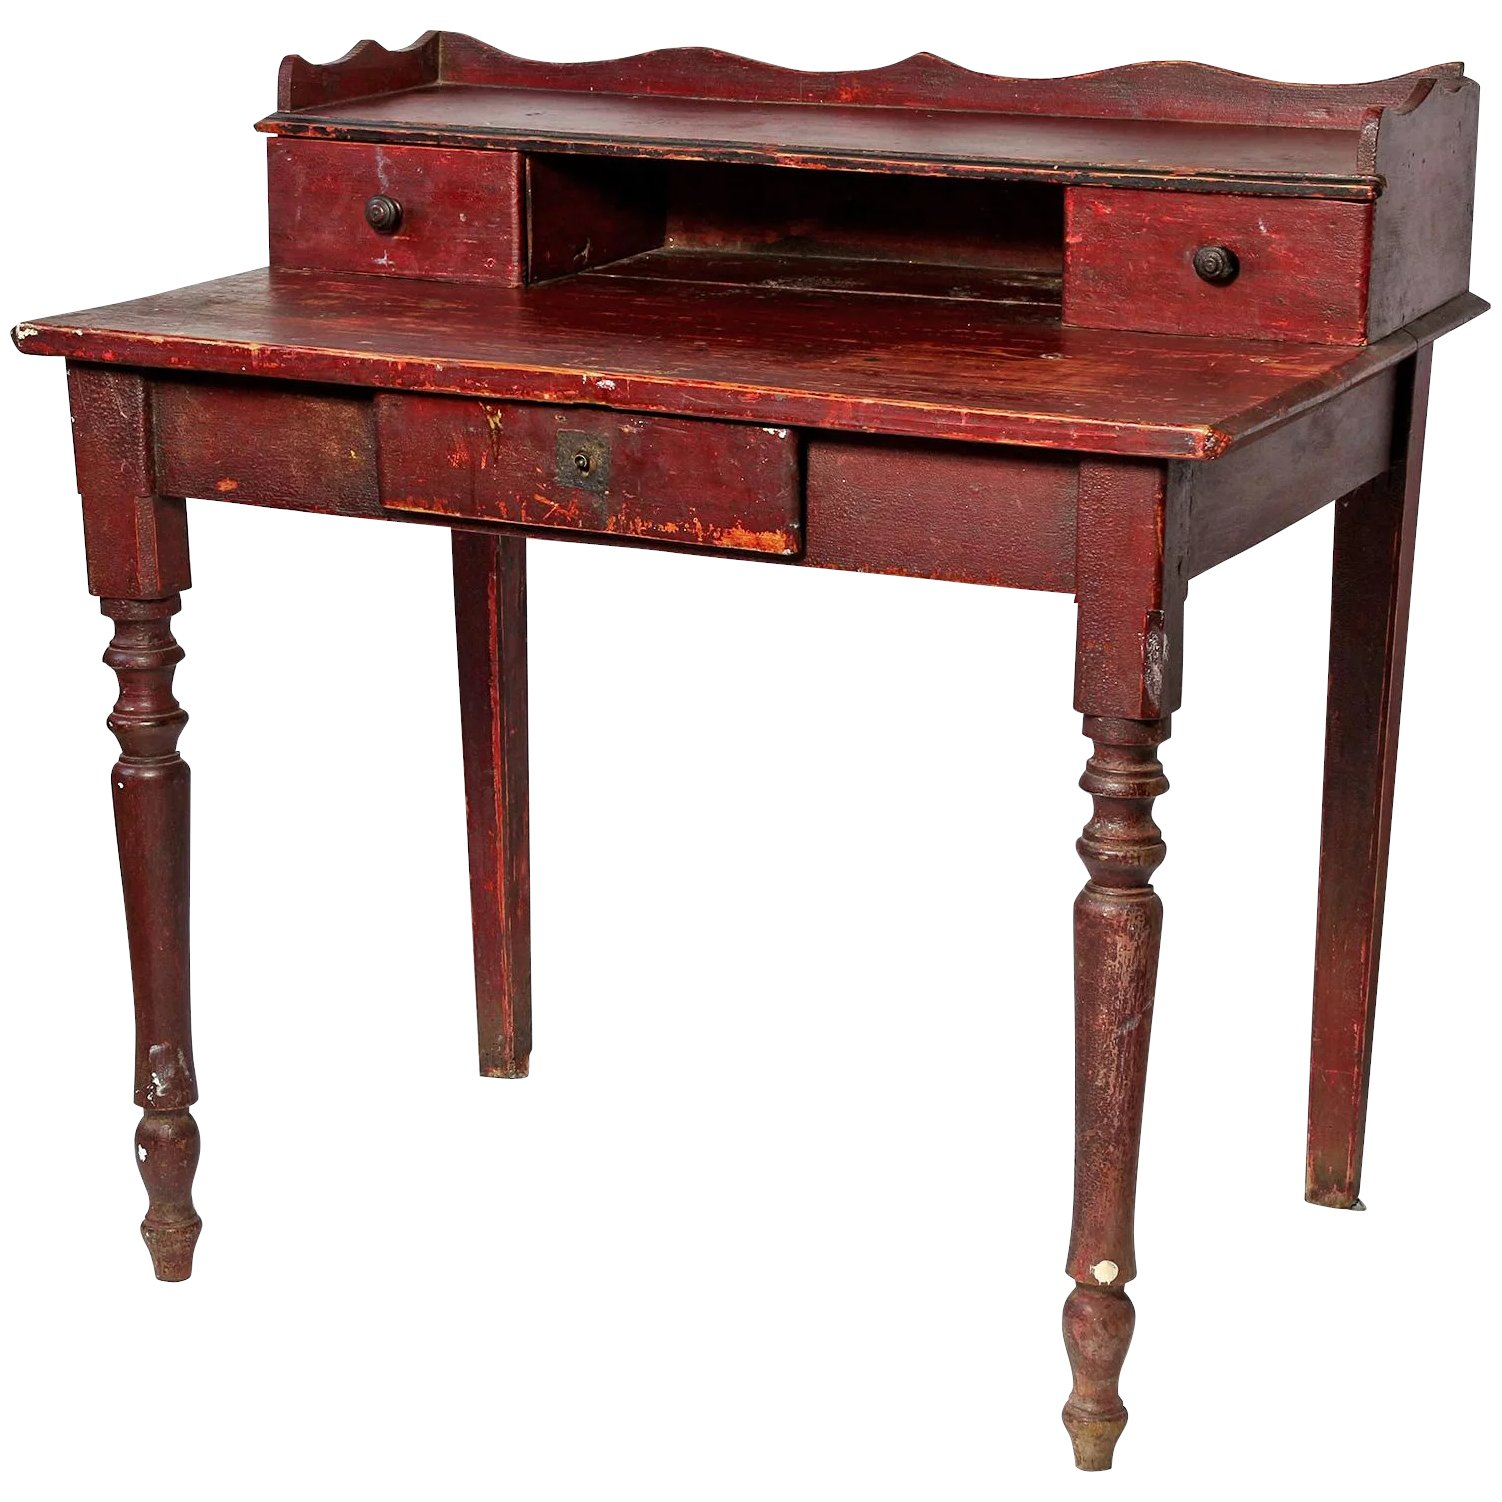 Click to expand - Small French Desk In 'Bullsblood' Red Paint : Relic Antiques Of